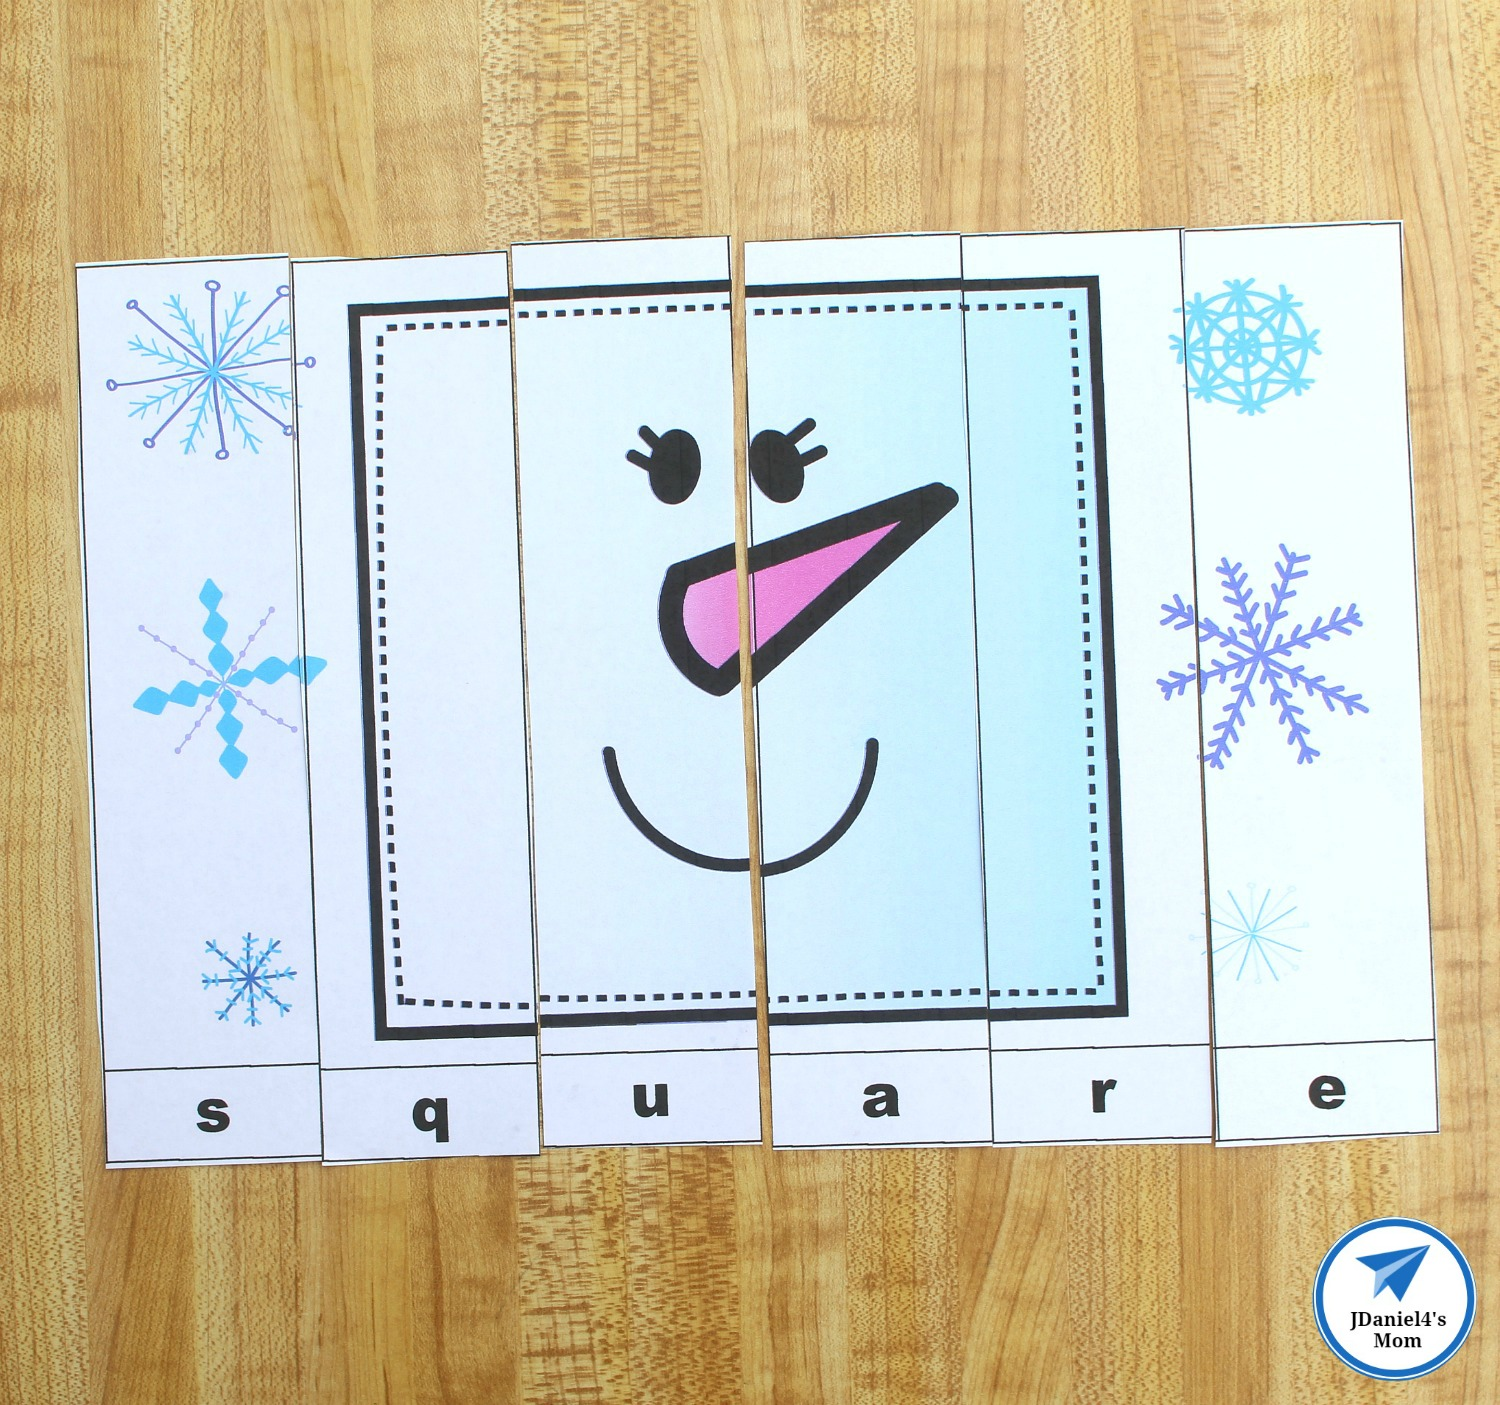 Snowman Shapes For Kids Printable Puzzles Jdaniel4s Mom